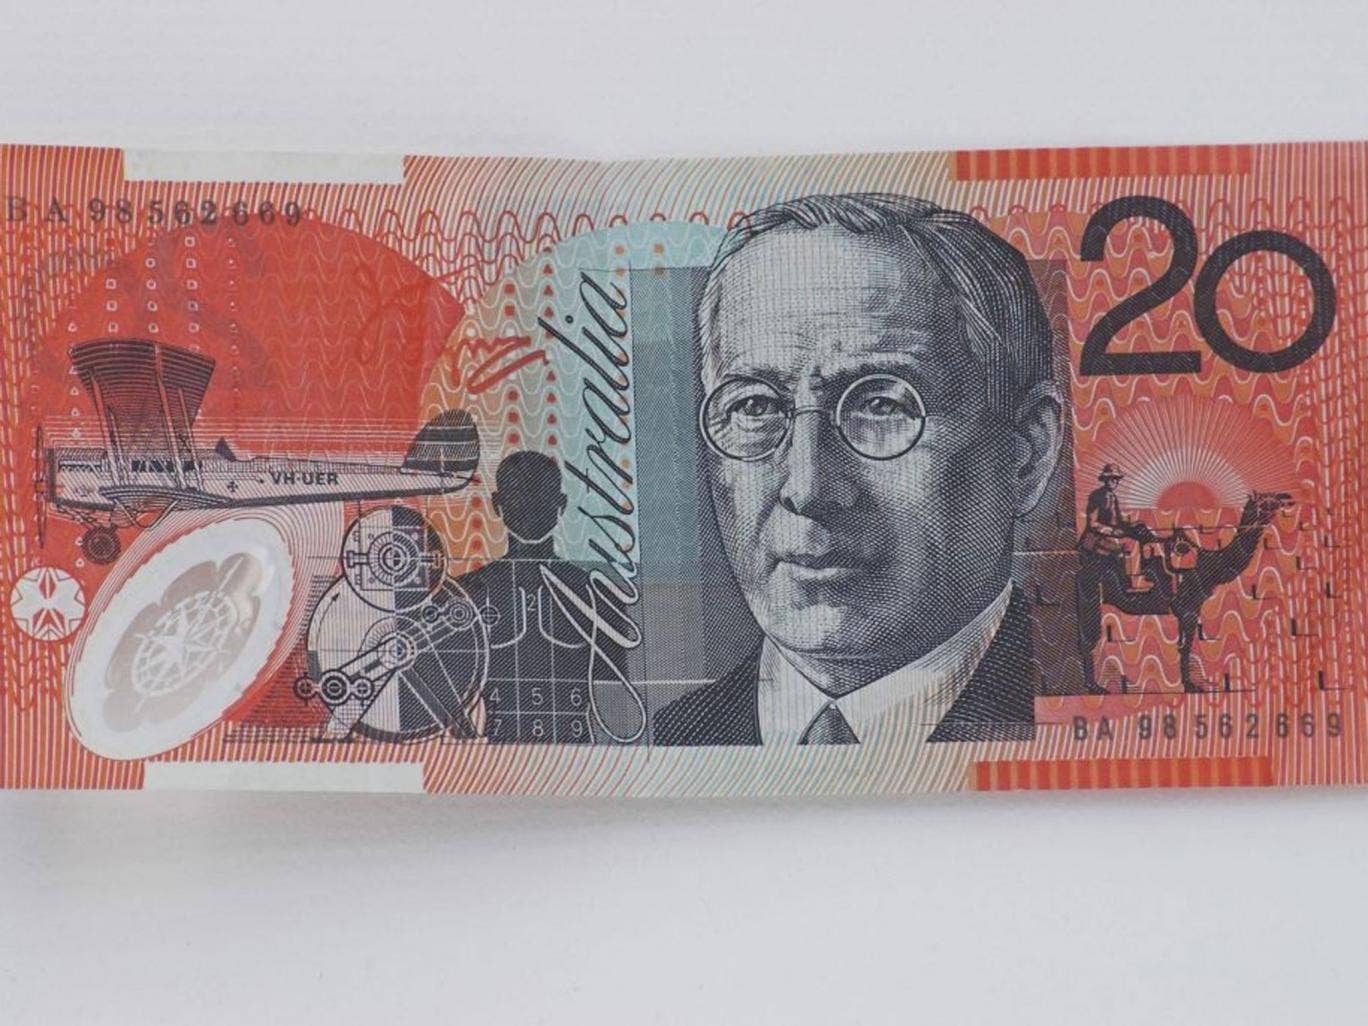 Polymer banknotes were first issued as currency in Australia